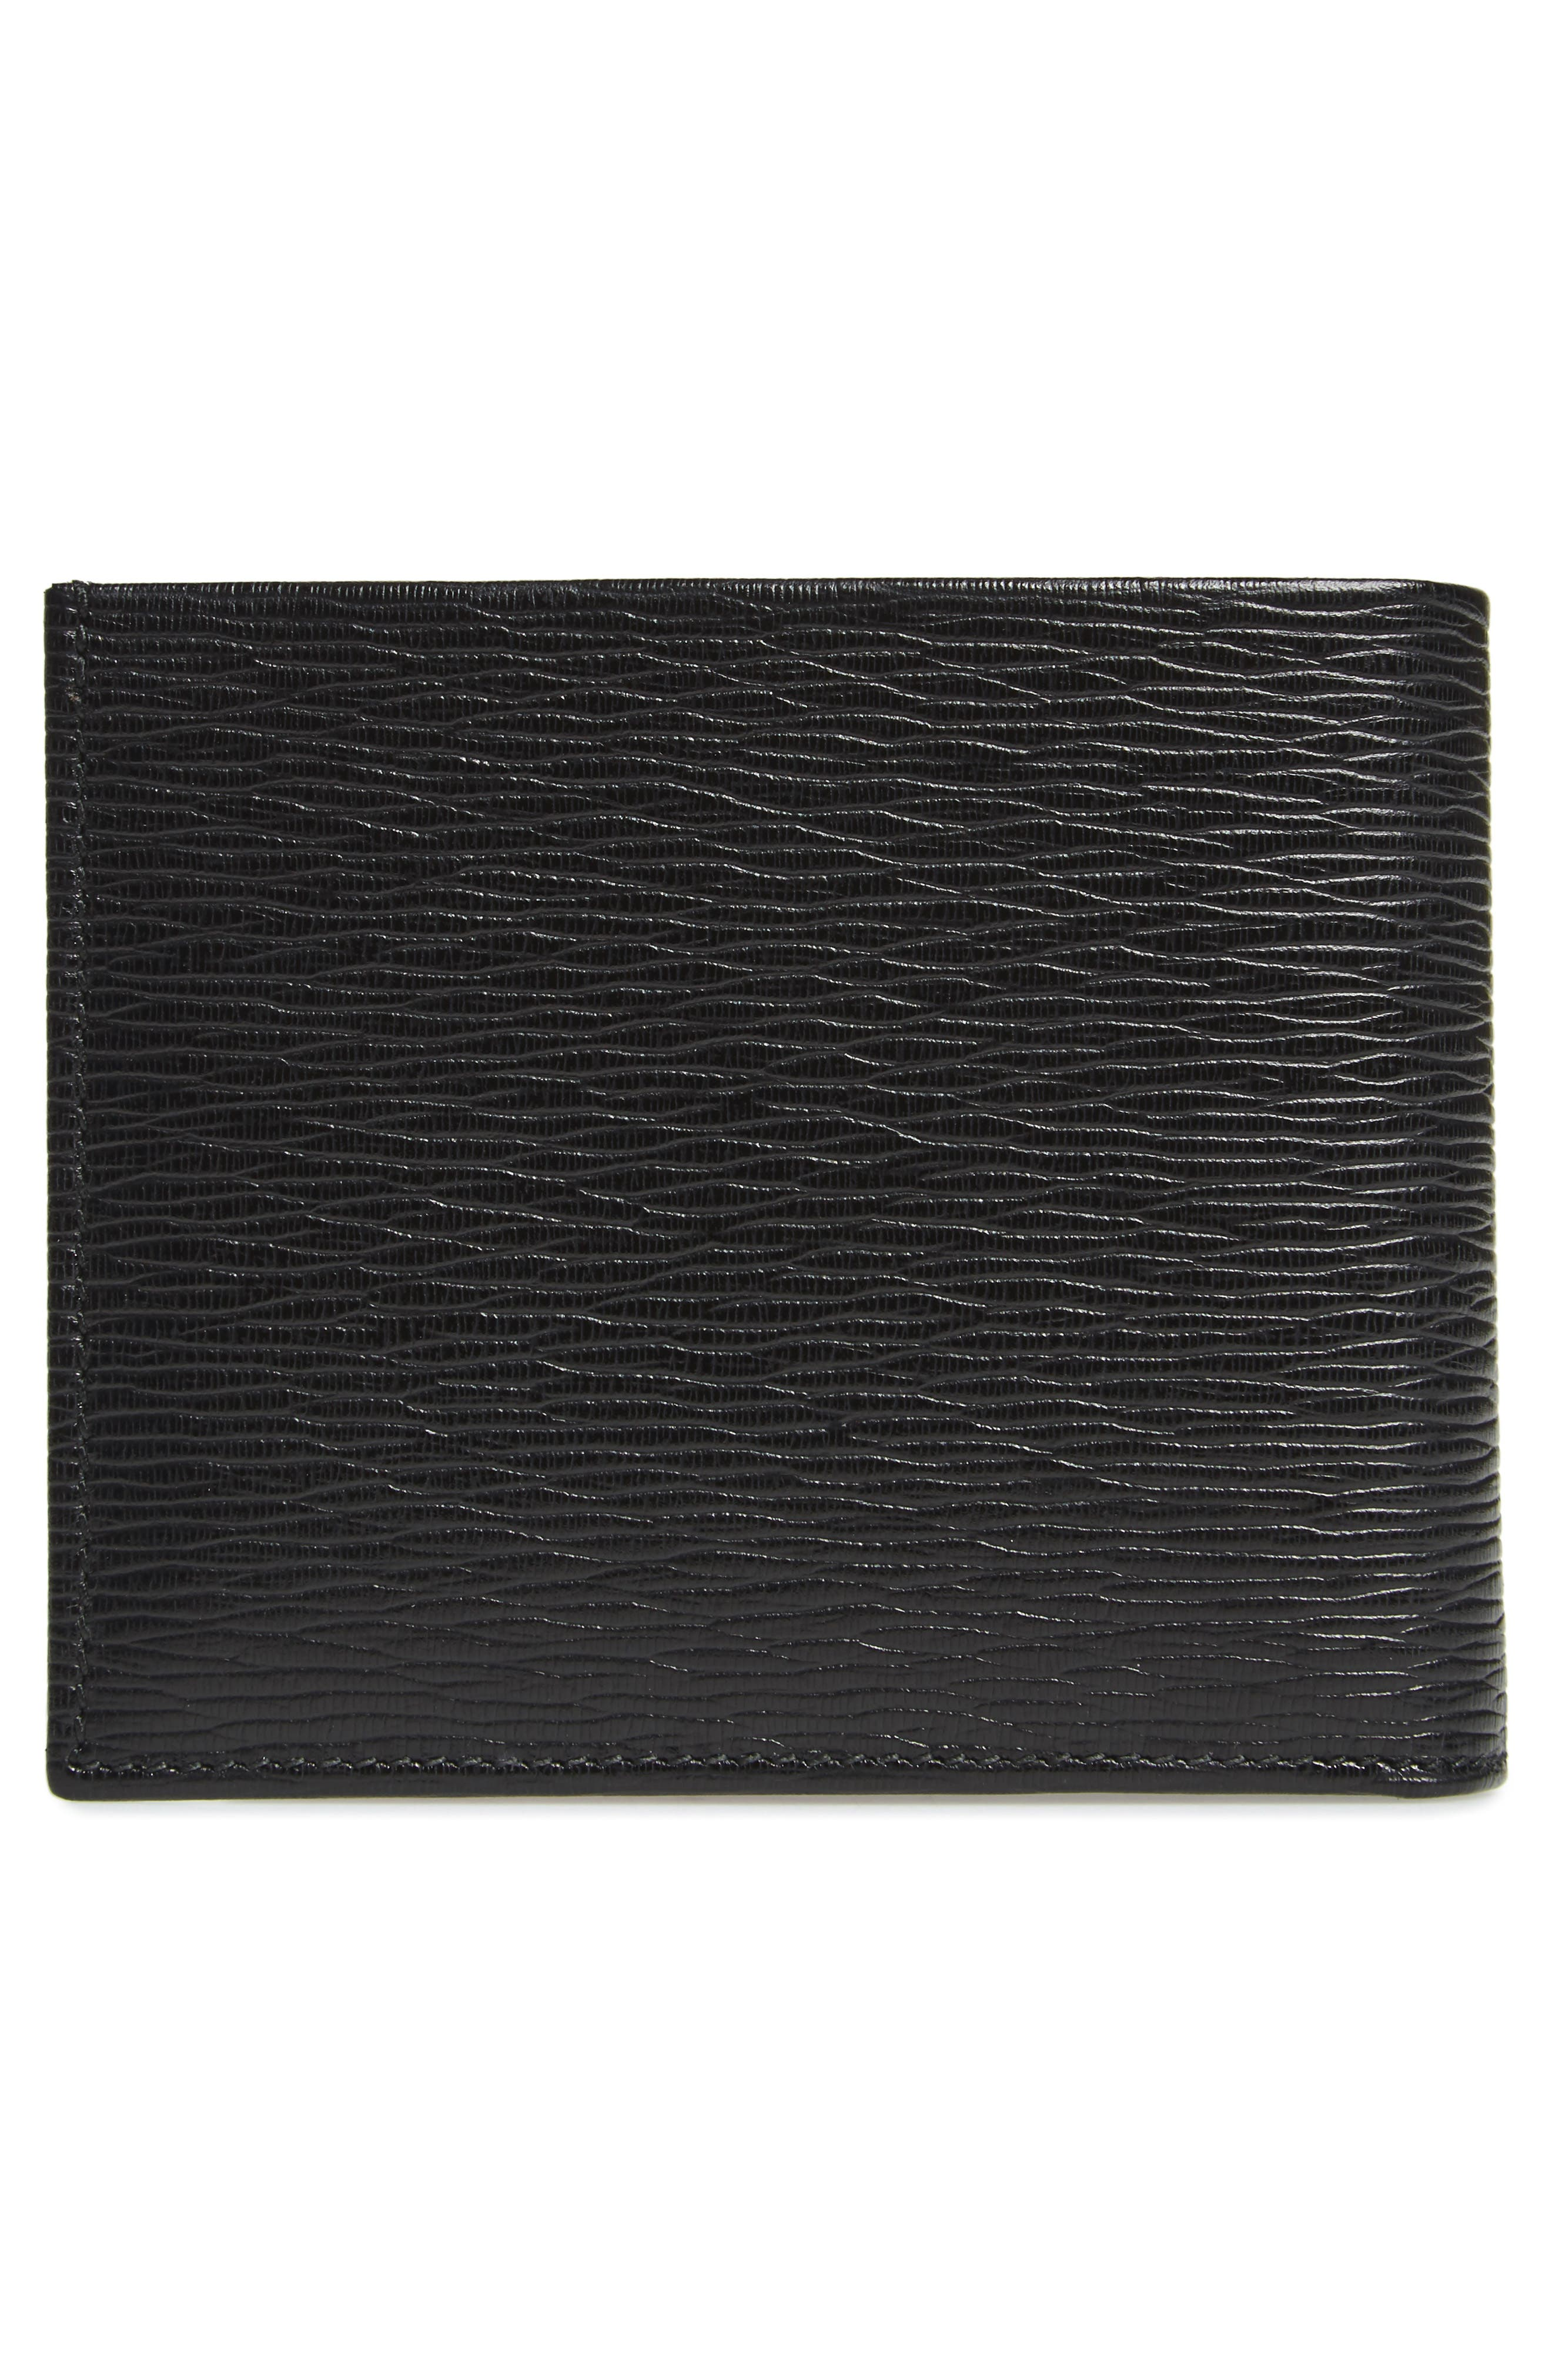 Revival Leather Wallet,                             Alternate thumbnail 3, color,                             Black/ Red